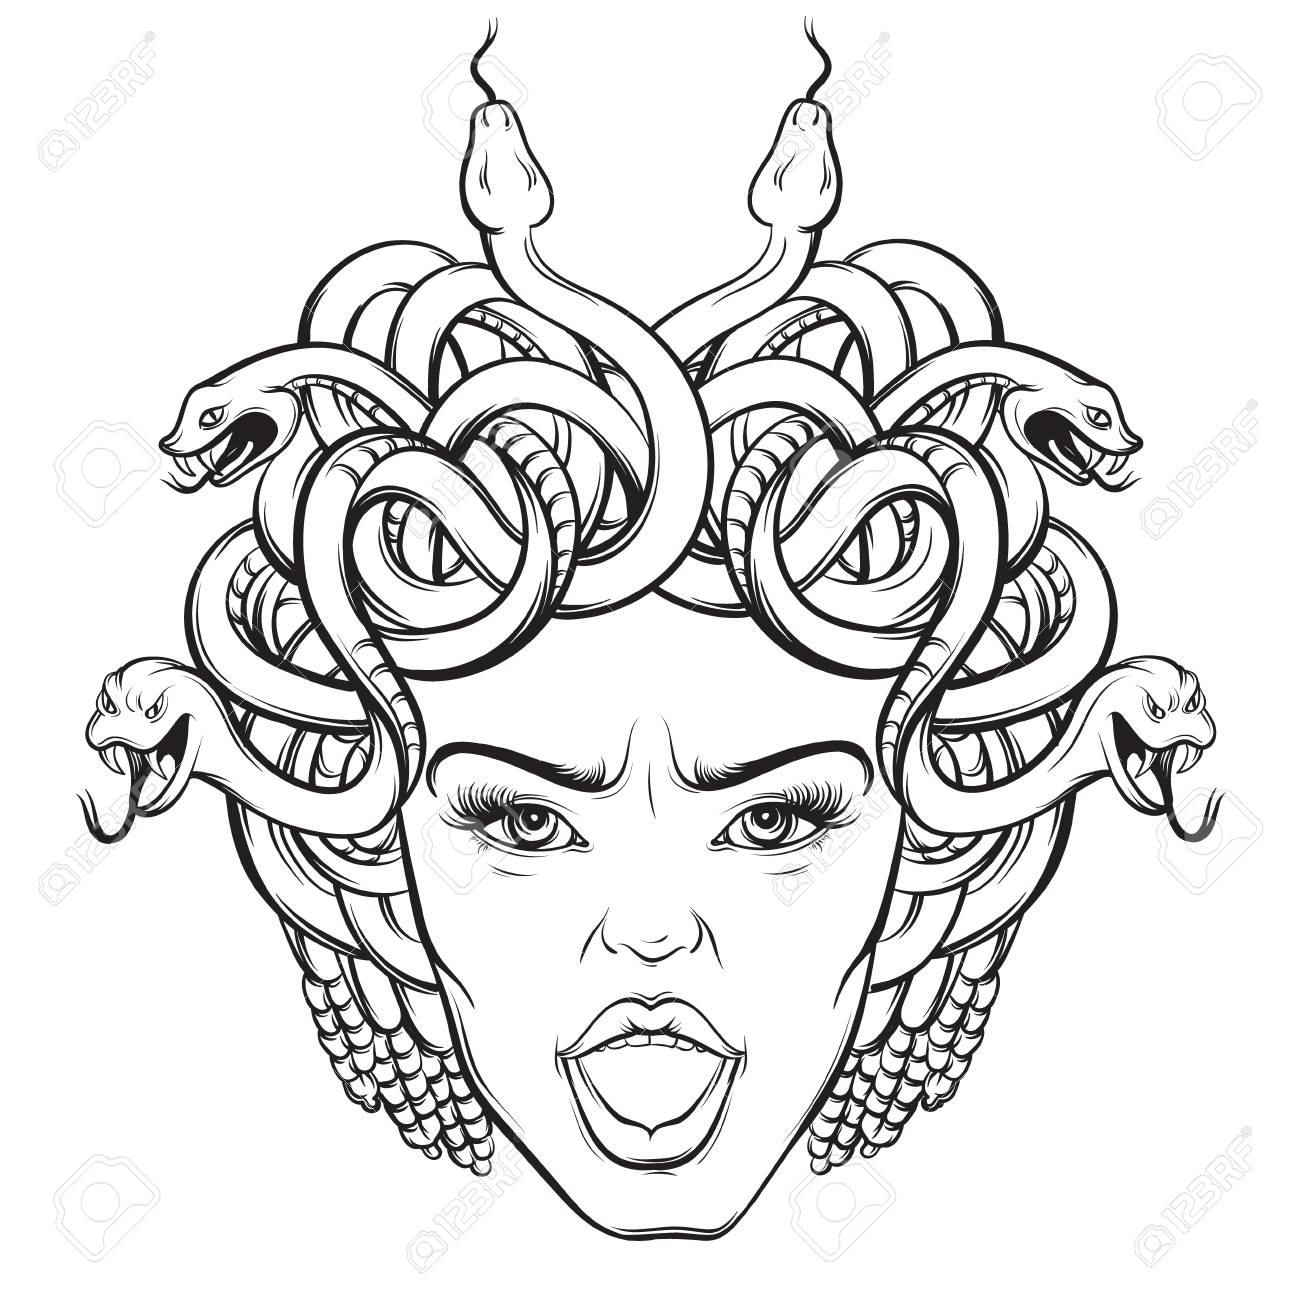 1300x1300 Vector Illustration Of Angry Gorgon With Snakes And Open Mouth